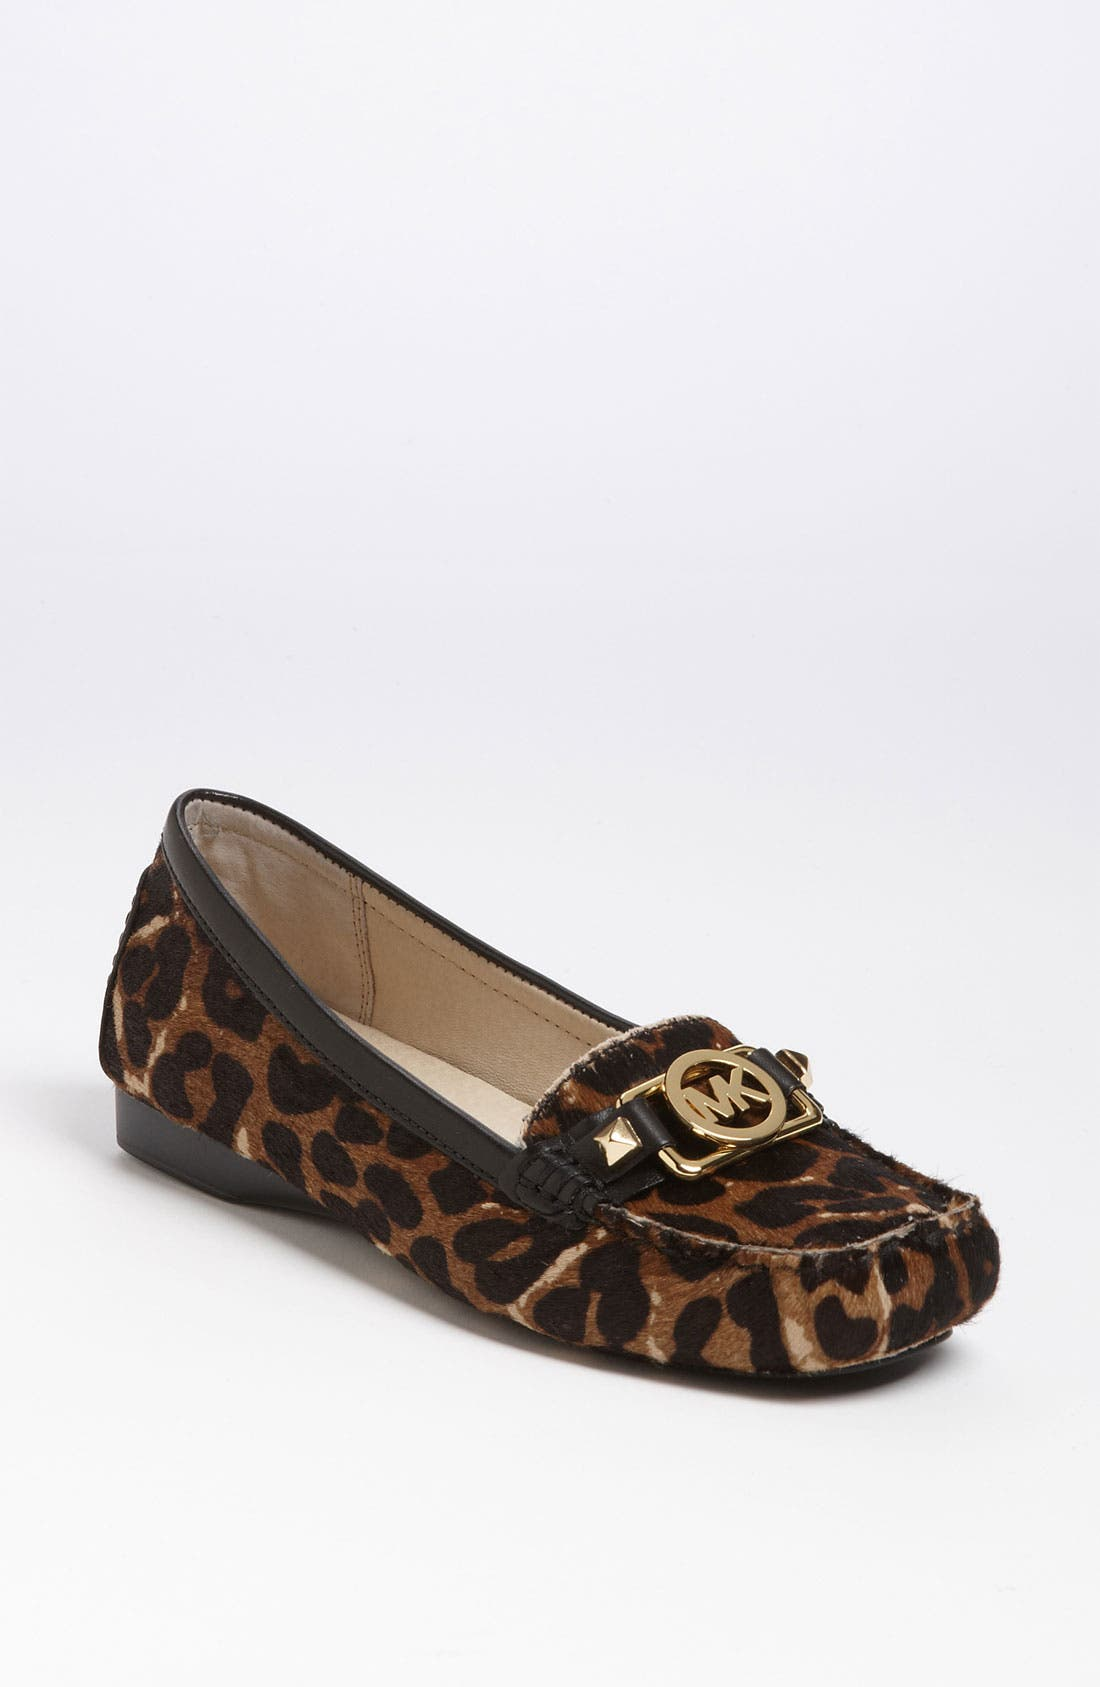 MICHAEL MICHAEL KORS 'Charm' Moccasin, Main, color, 200